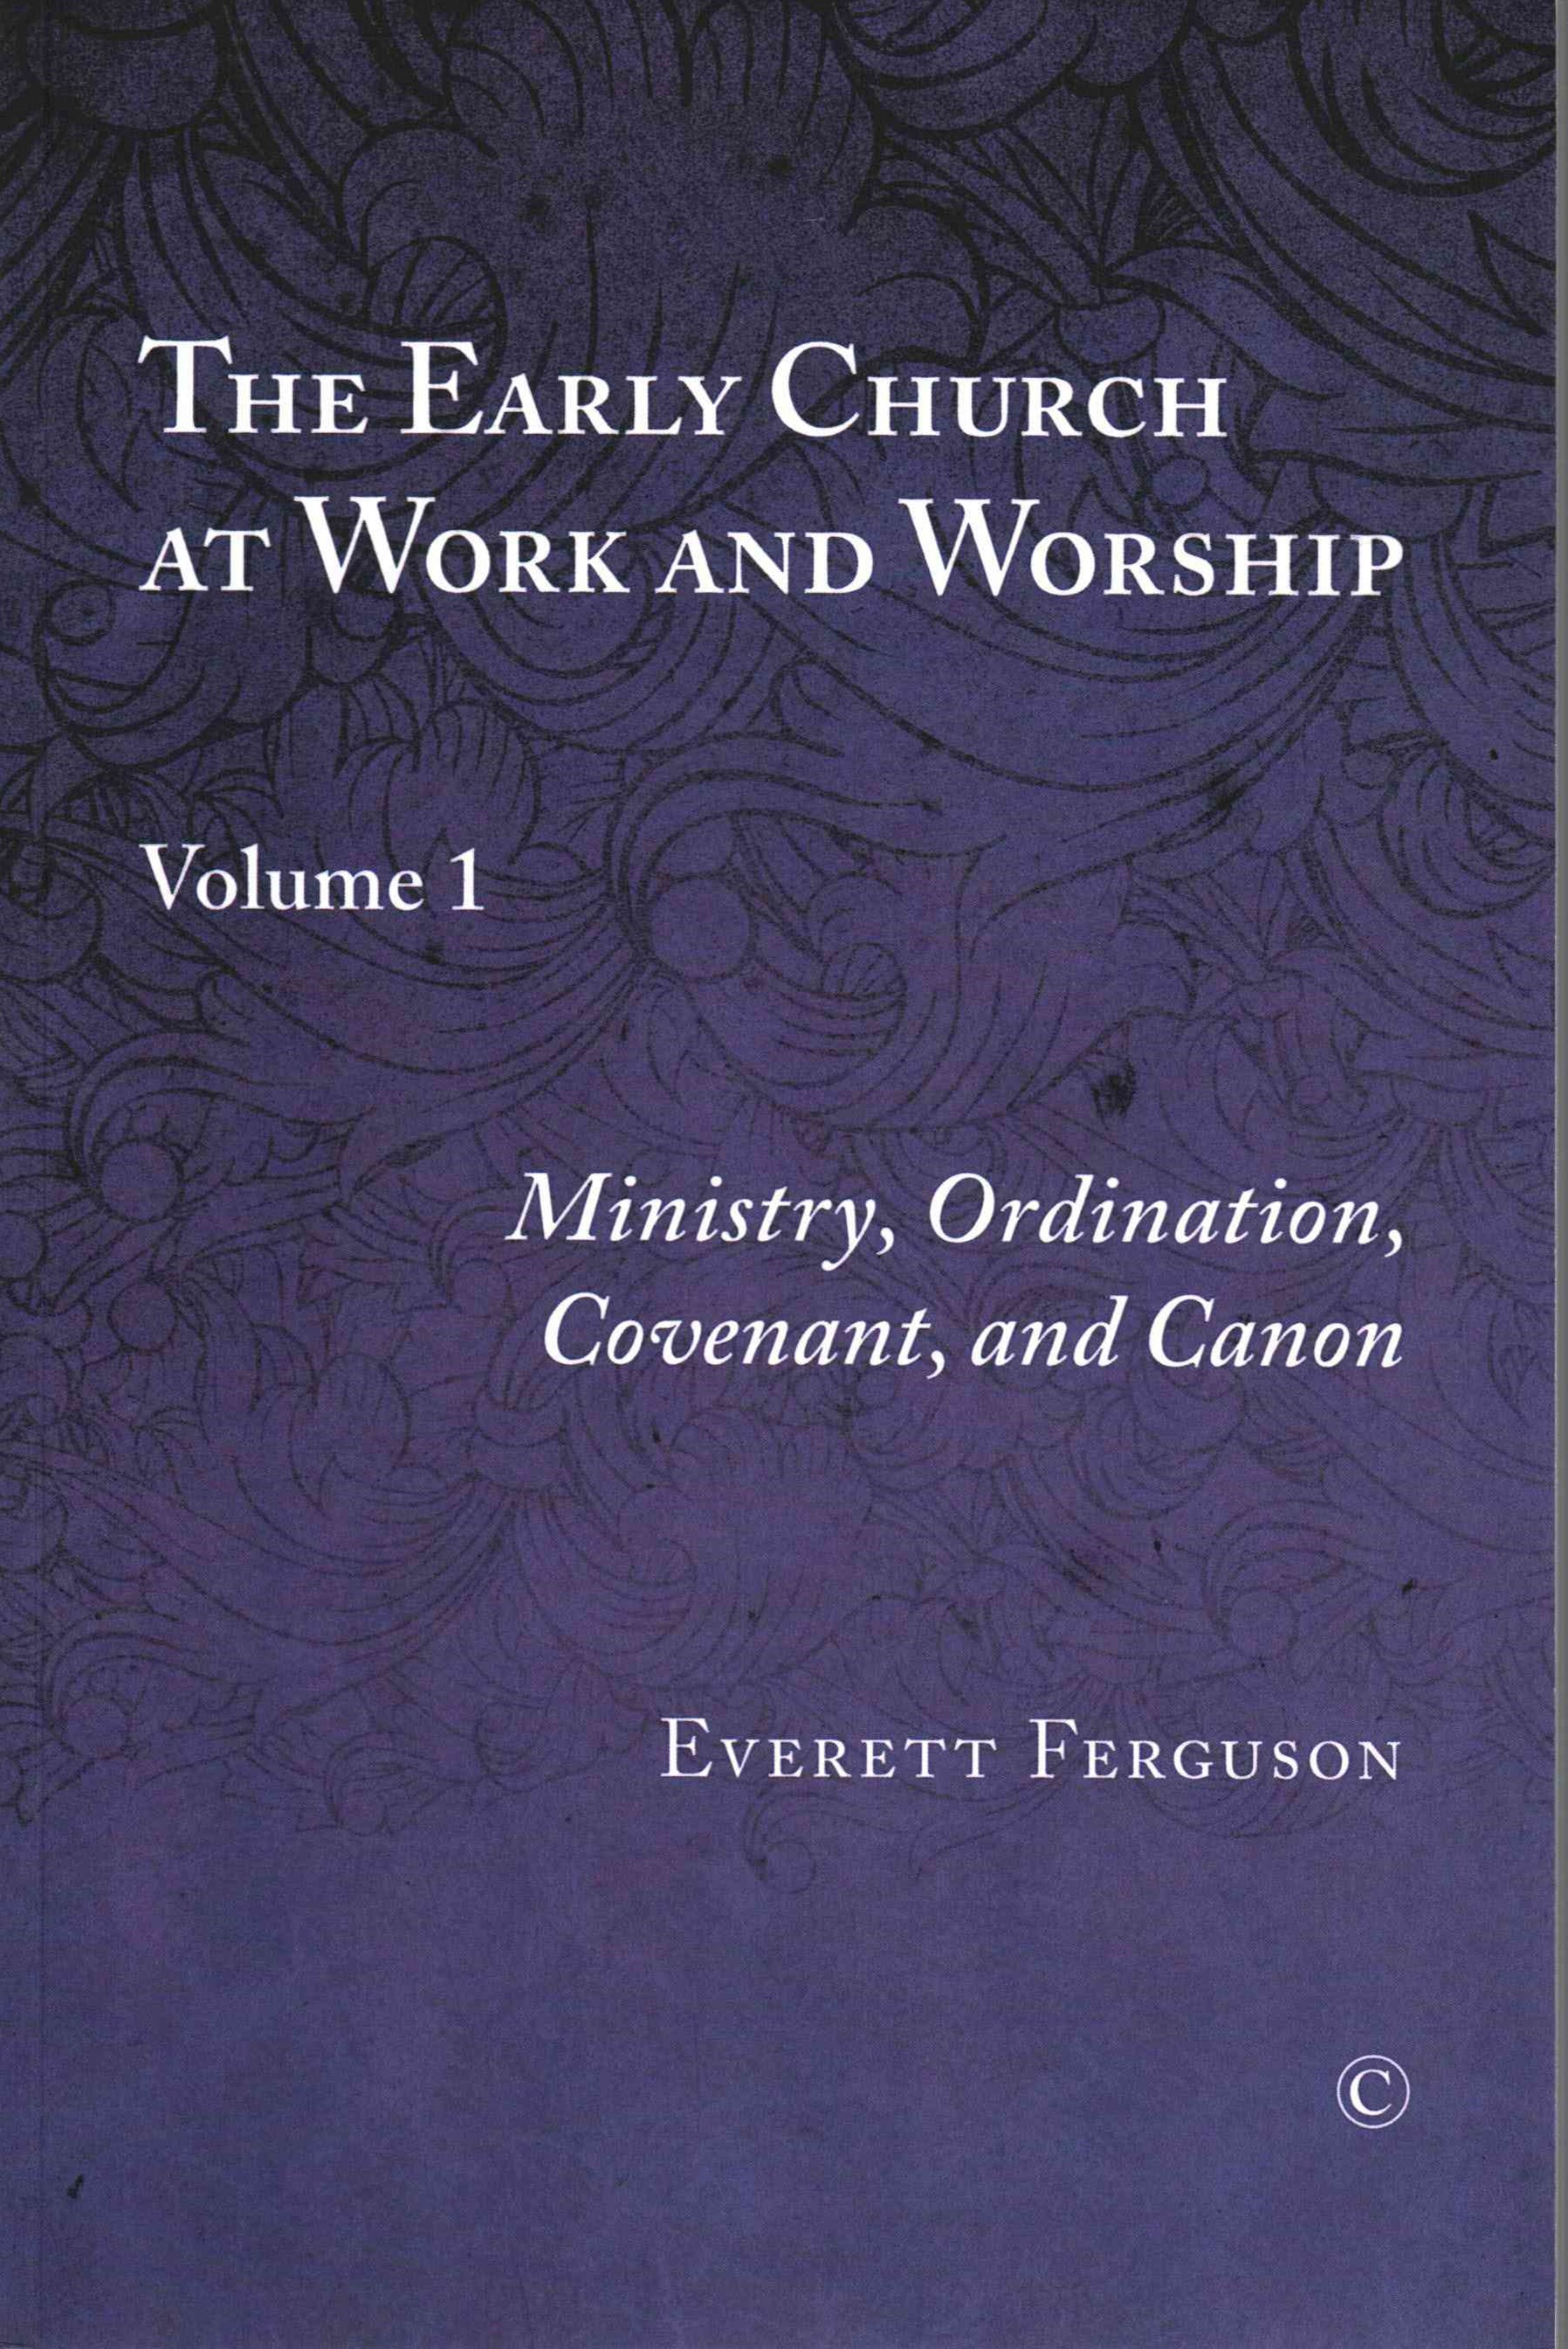 The Early Church at Work and Worship